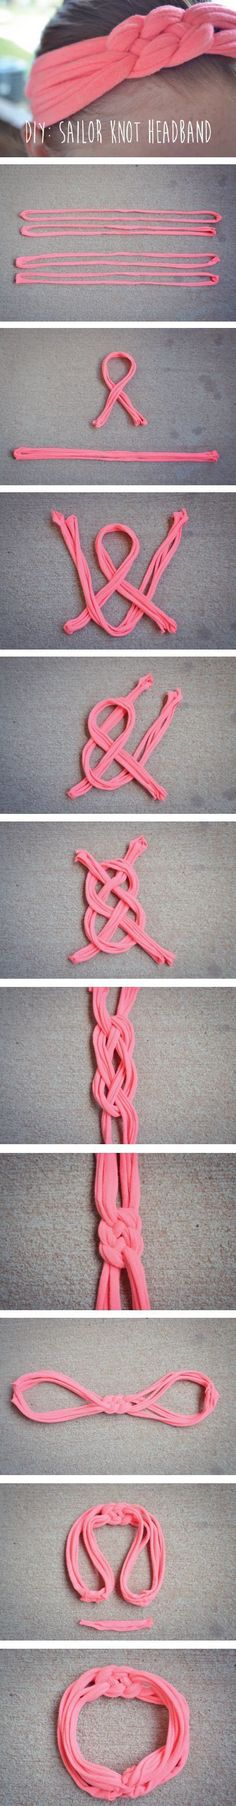 http://dailydorius.blogspot.com/2014/06/diy-01-knotted-sailor-headband.html  DIY: Sailor knot headband! This is super easy to make and the tutorial is easy to follow along. All you need is a pair of scissors and an old t-shirt!: